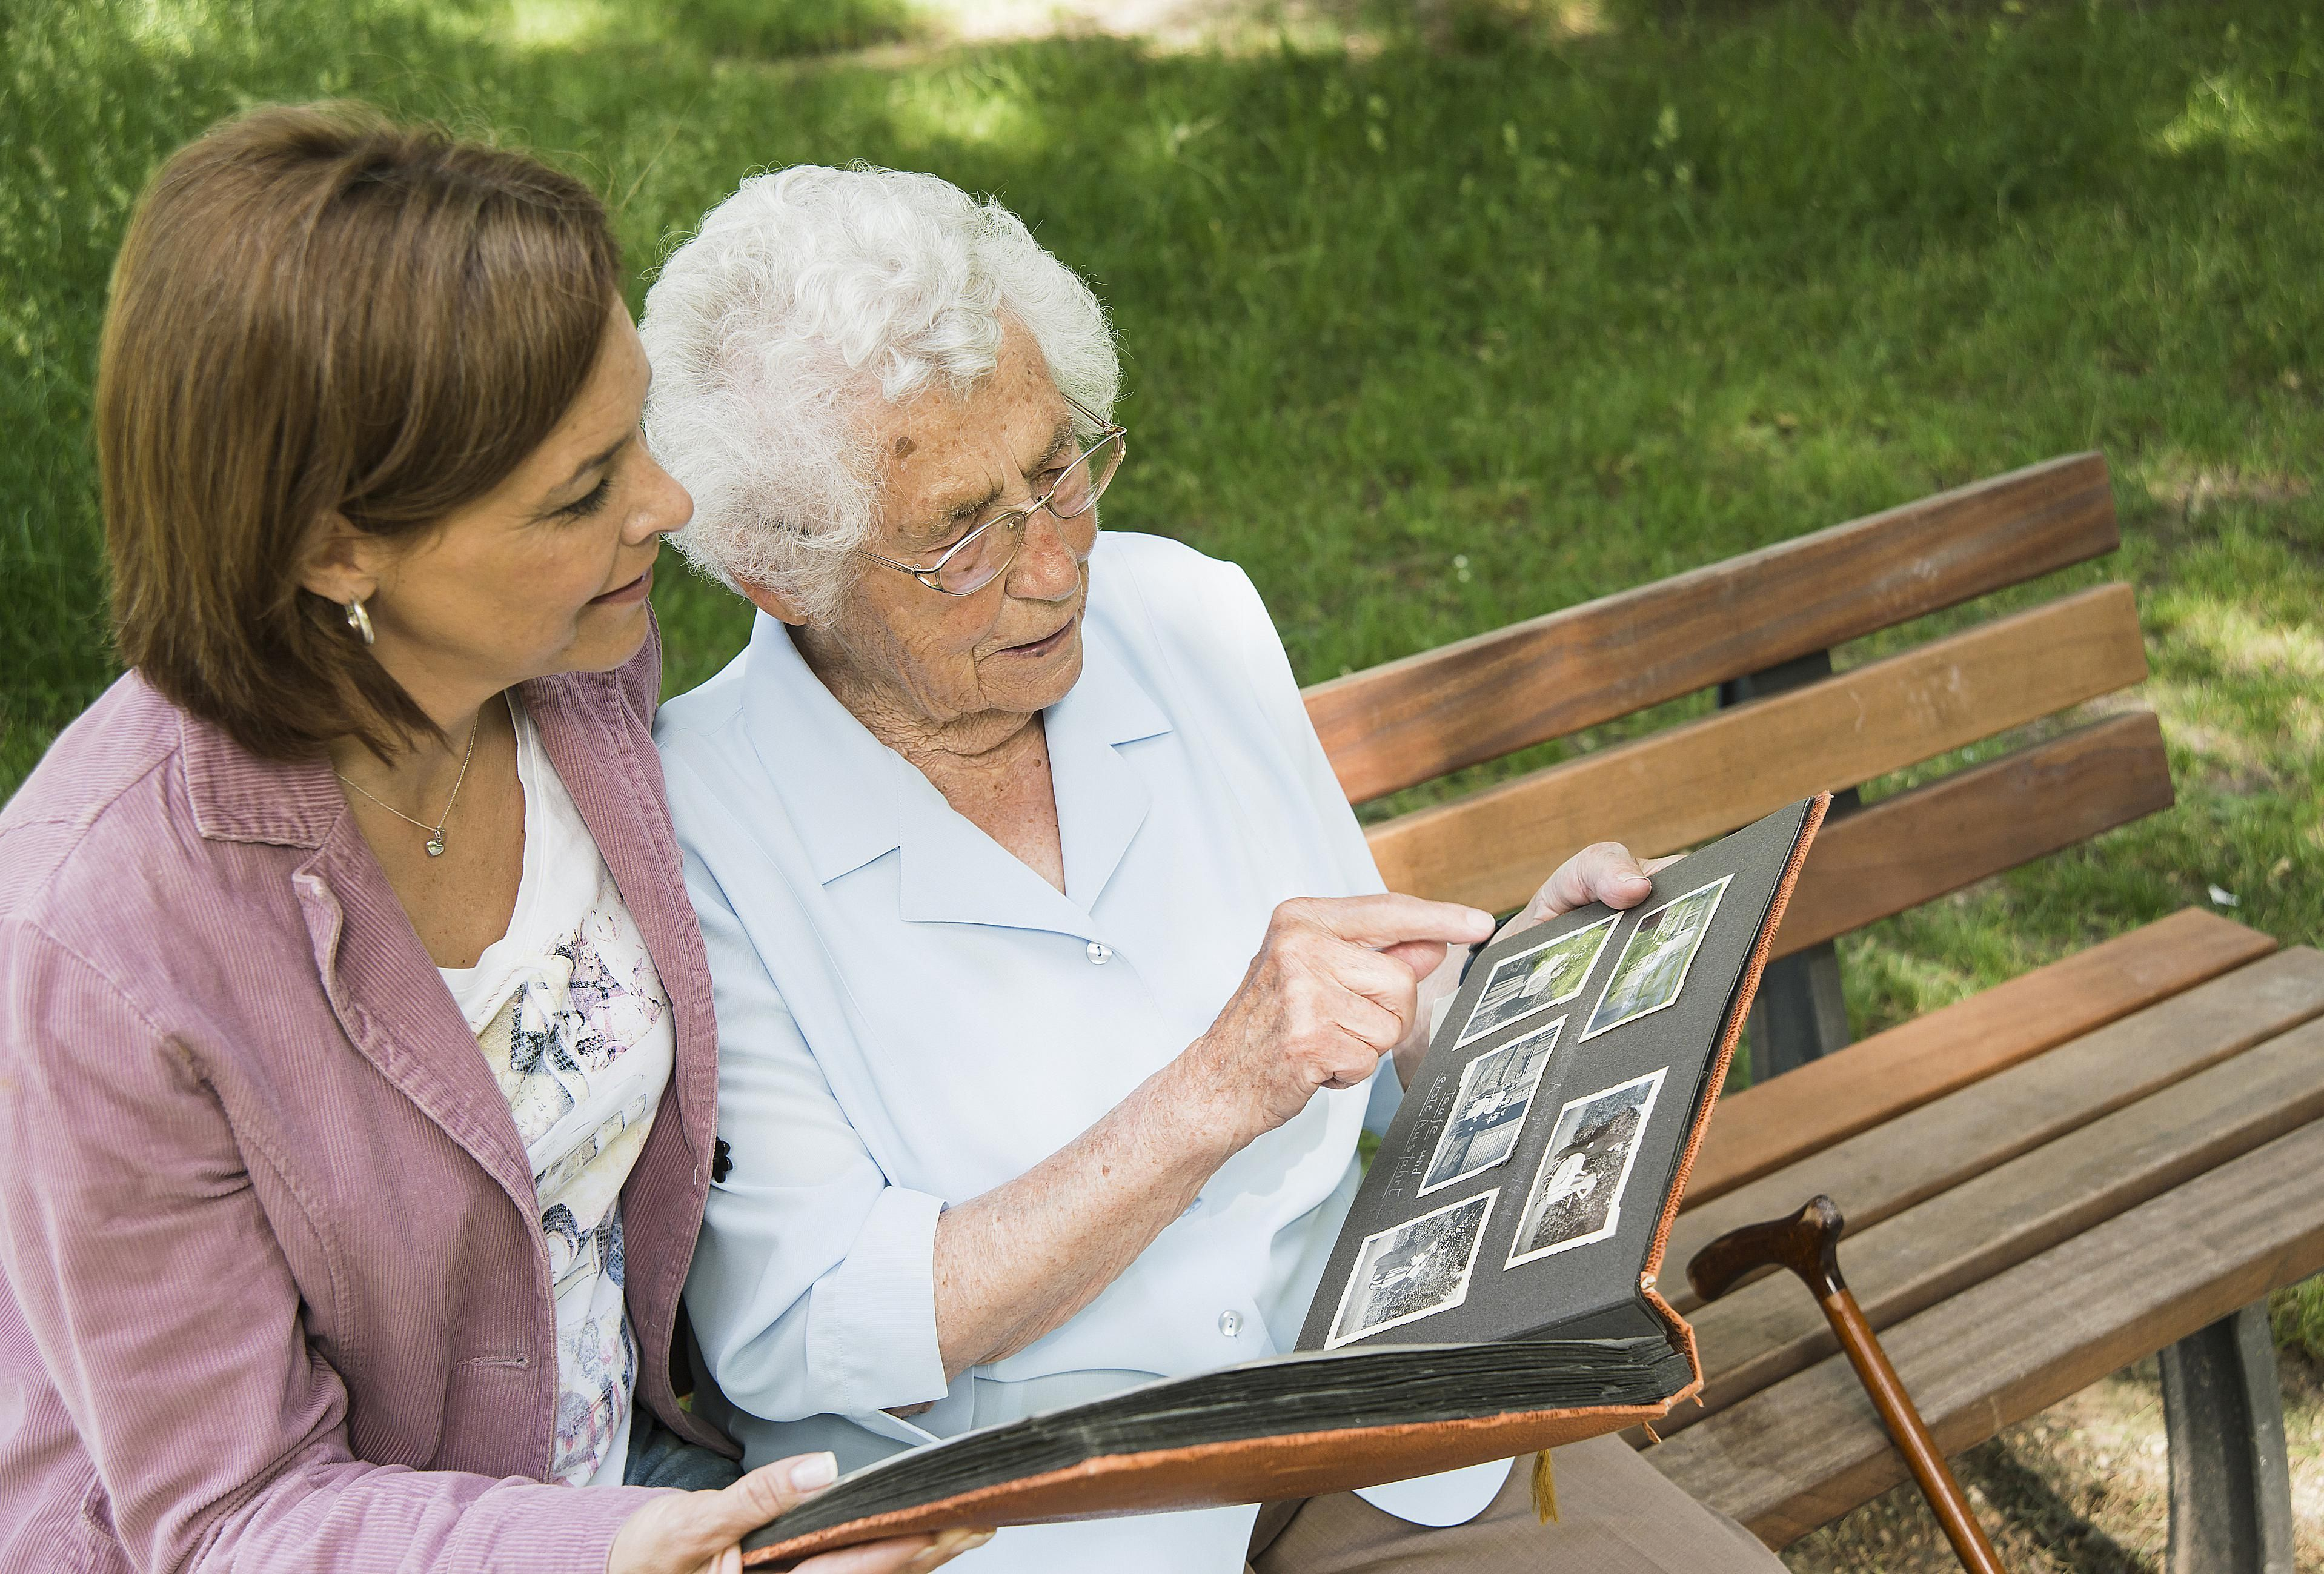 SHARING YOUR MEMORIES WITH FUTURE GENERATIONS